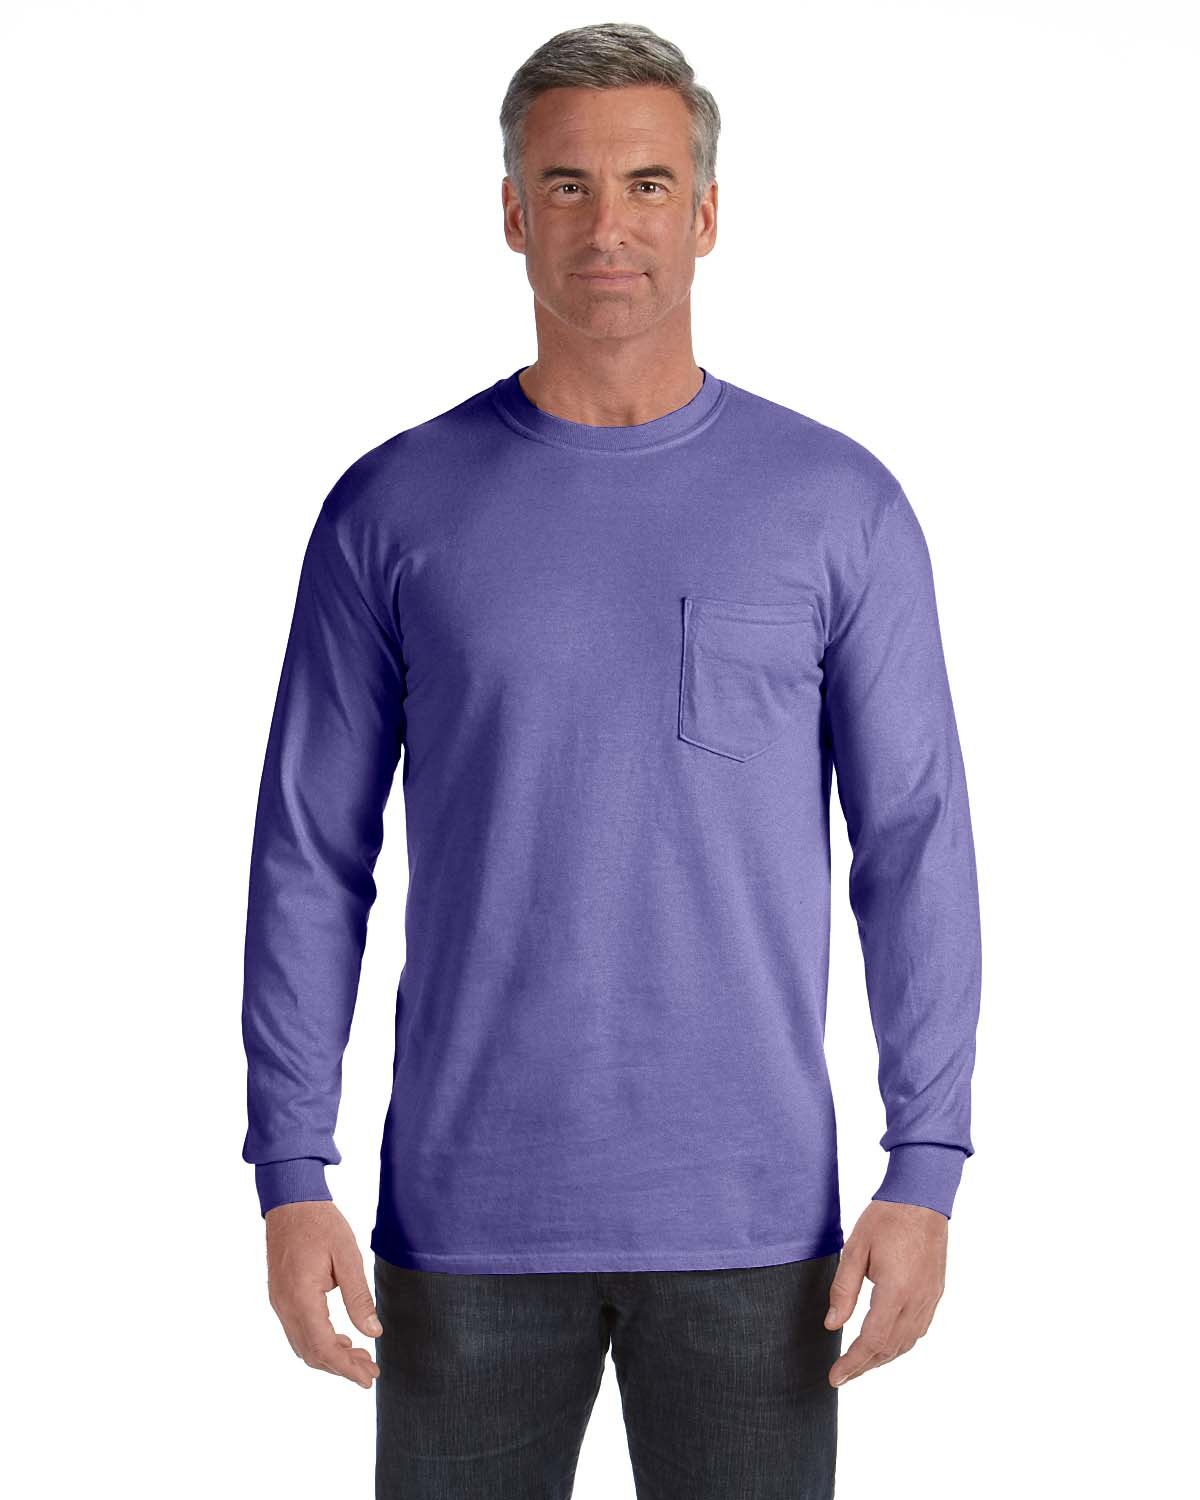 Comfort Colors Adult Heavyweight RS Long-Sleeve Pocket T-Shirt VIOLET